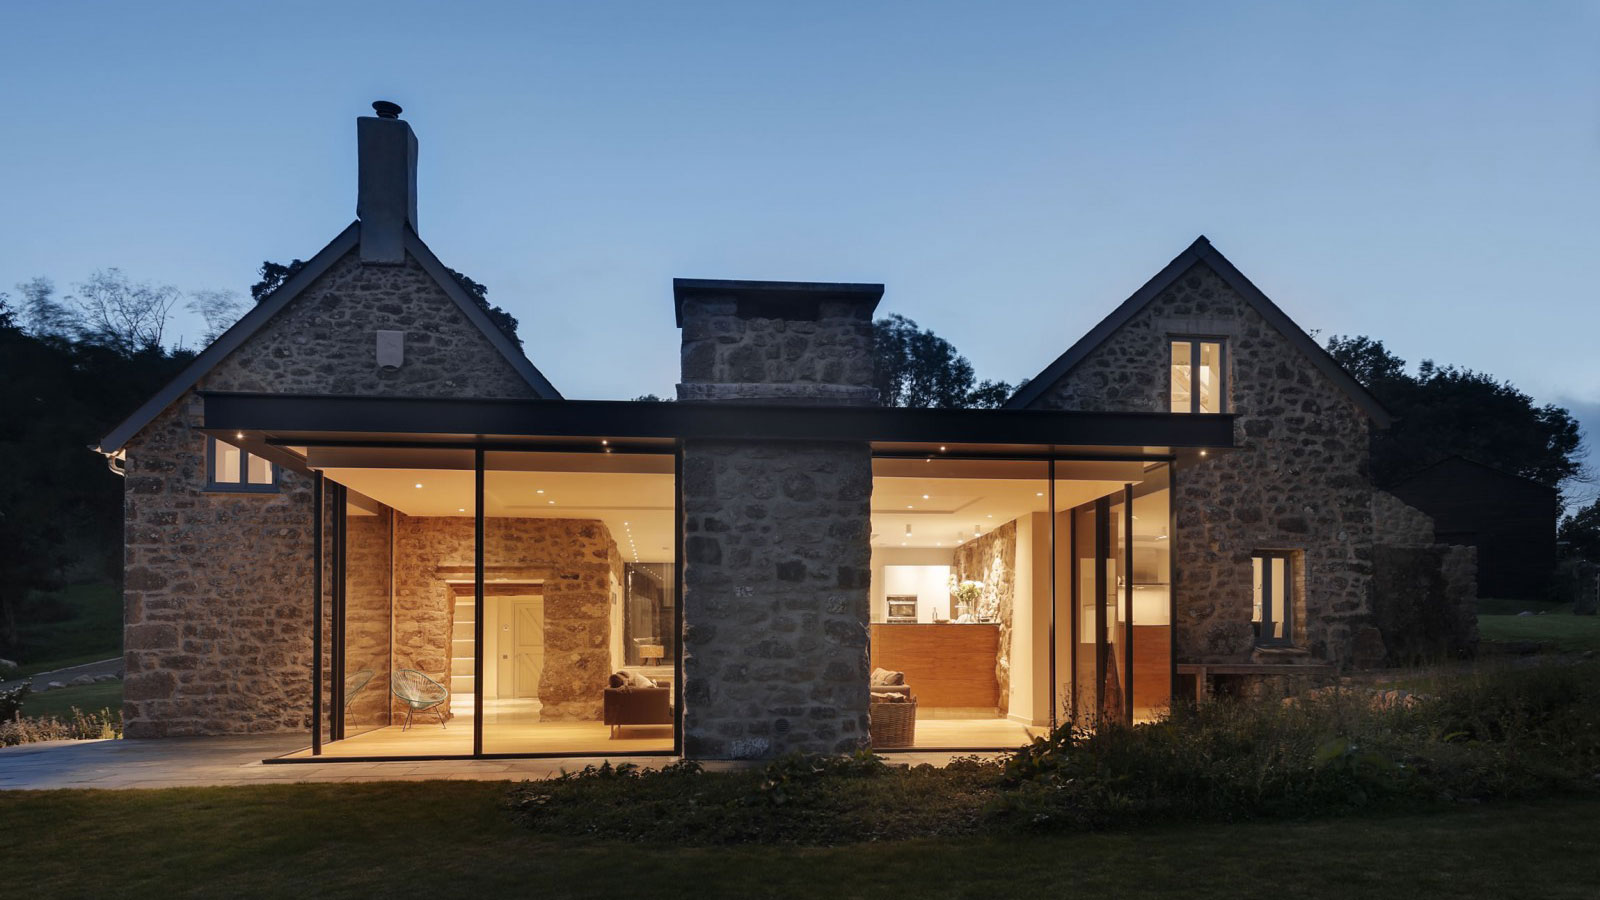 West Yard Farm By Van Ellen Sheryn Architects